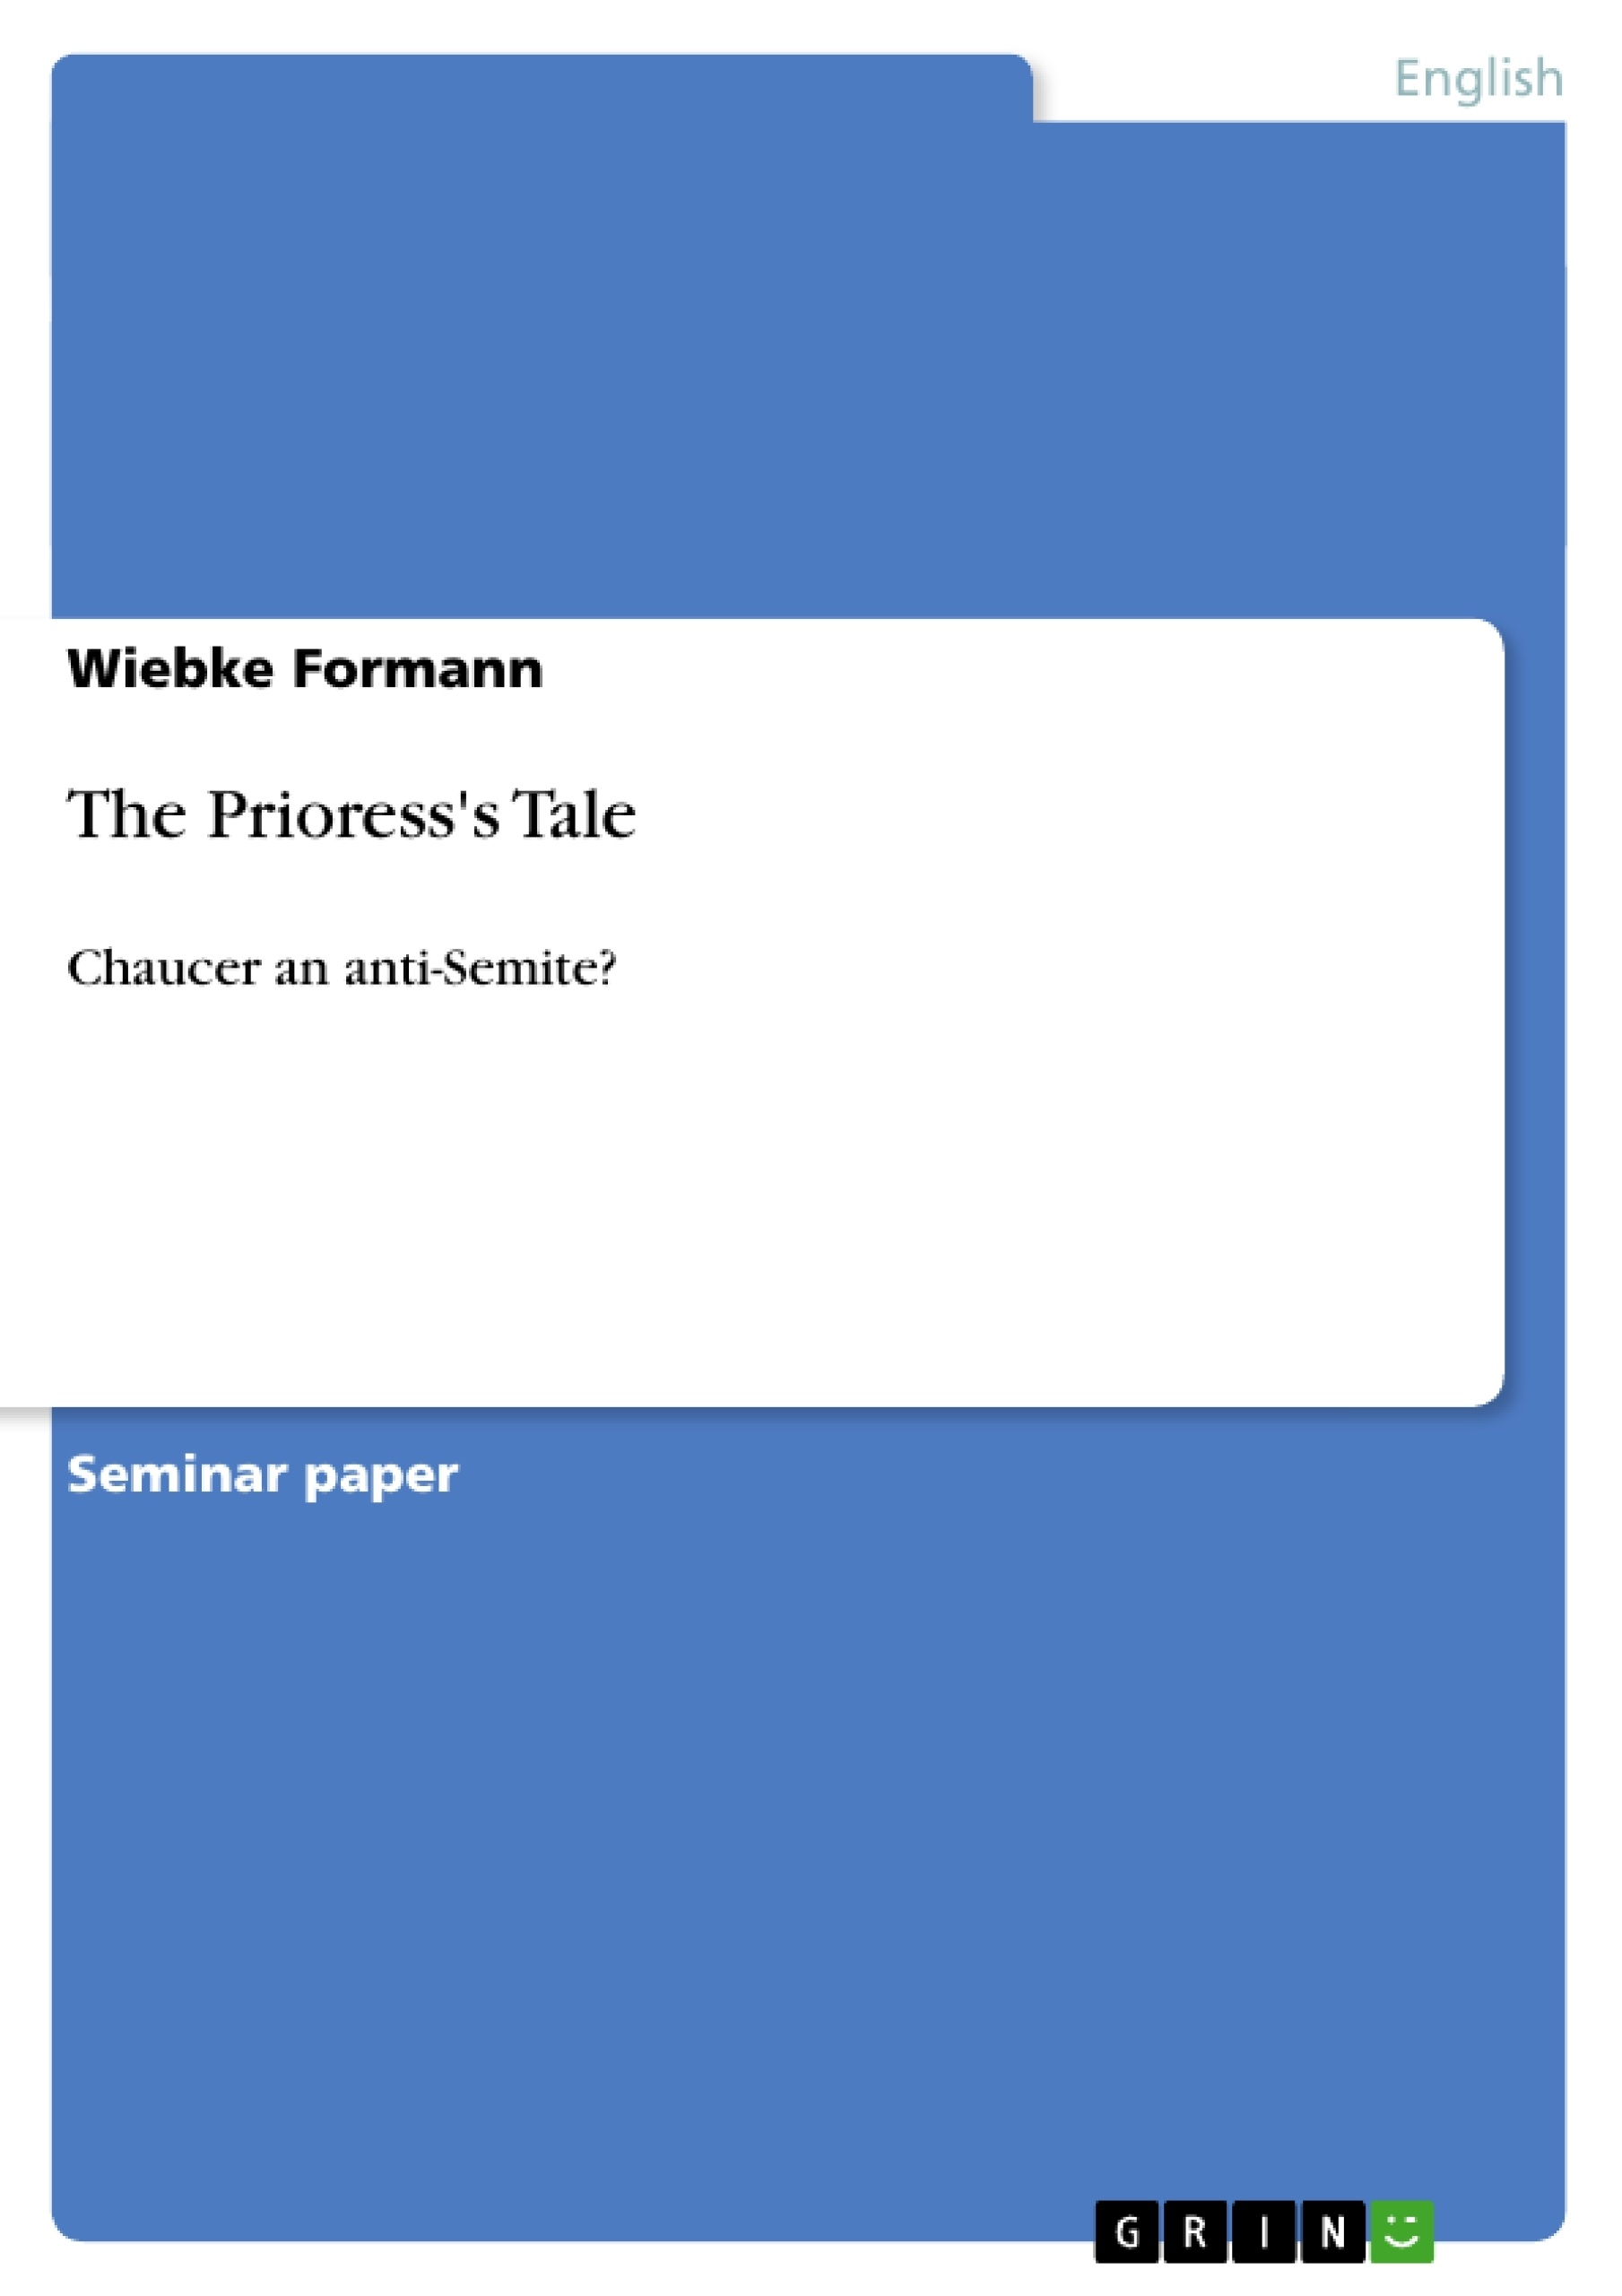 Title: The Prioress's Tale